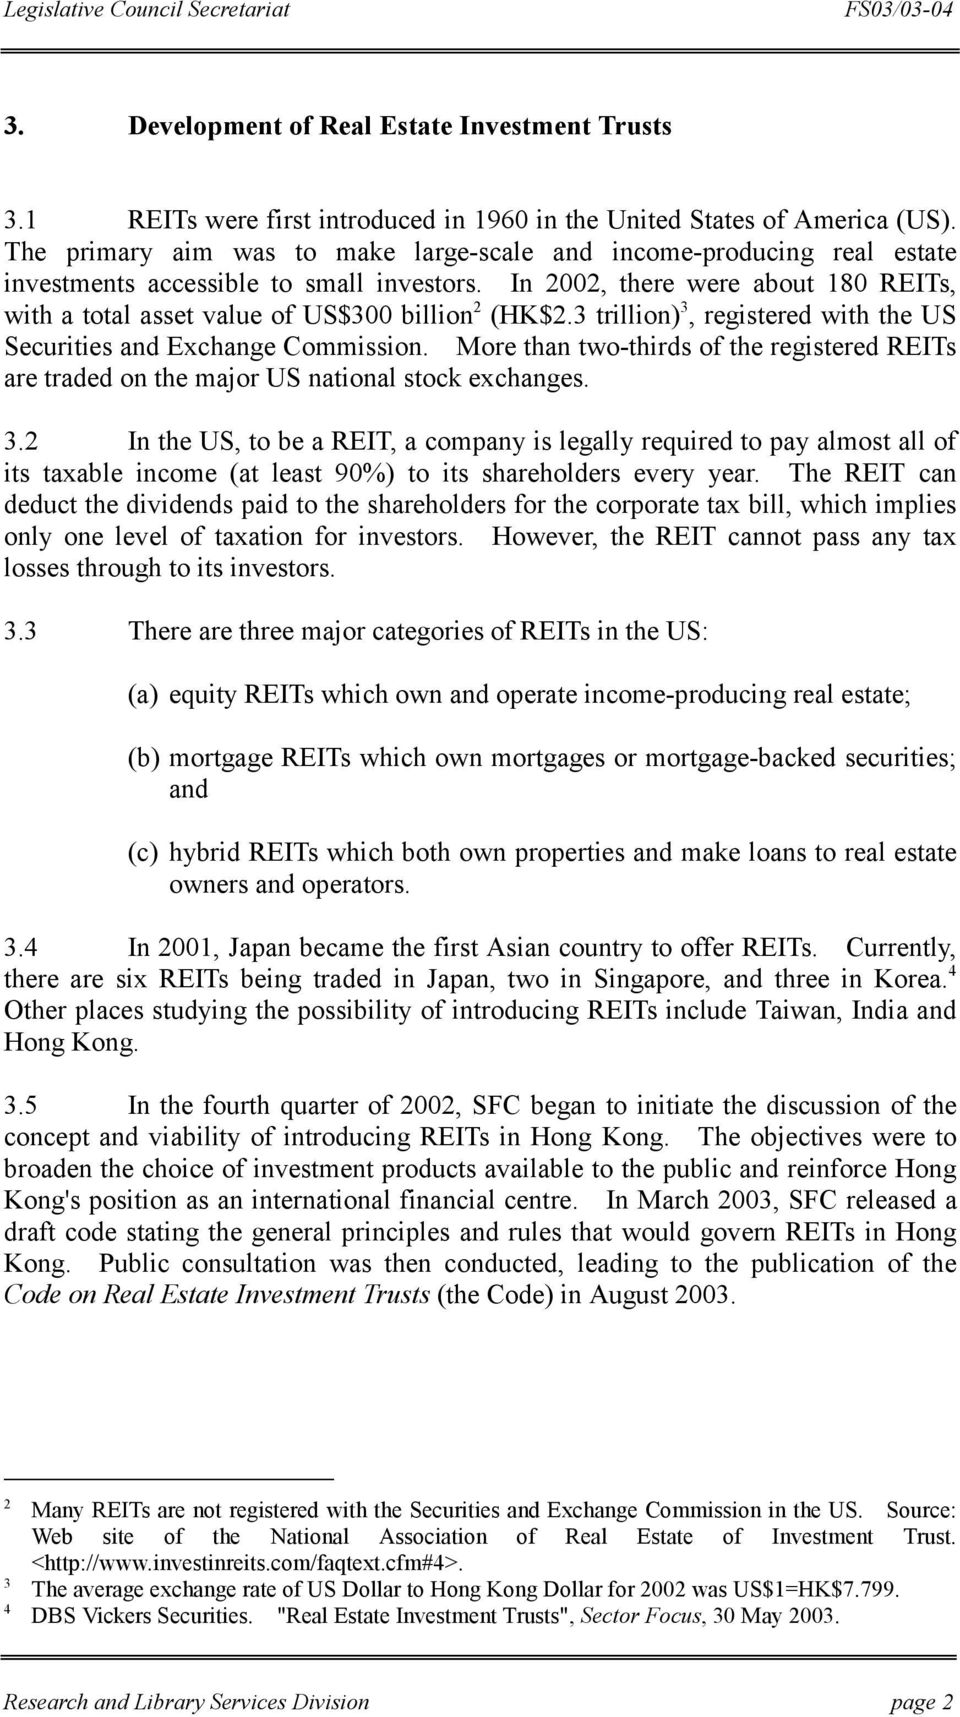 In 2002, there were about 180 REITs, with a total asset value of US$300 billion 2 (HK$2.3 trillion) 3, registered with the US Securities and Exchange Commission.